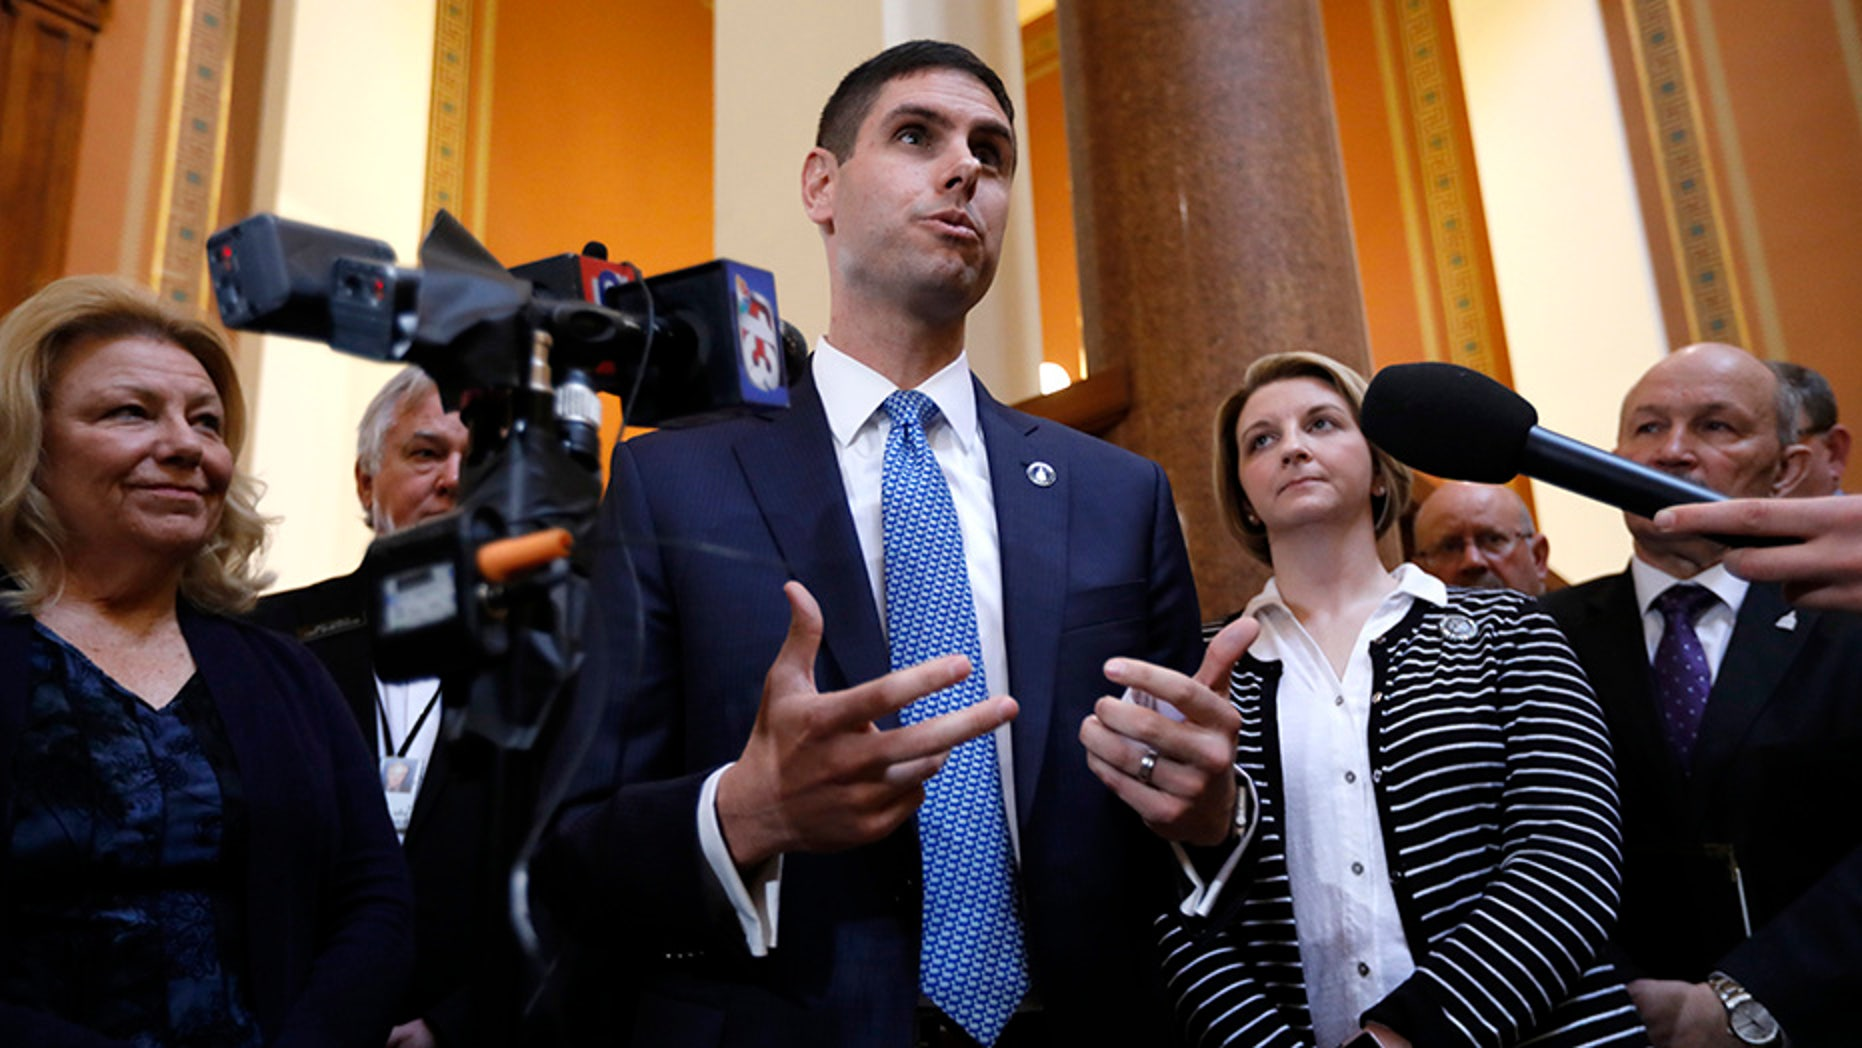 Three women told The Des Moines Register in a story published online Wednesday, May 23, 2018 that owa Democratic gubernatorial candidate Sen. Nate Boulton touched them inappropriately during separate incidents.